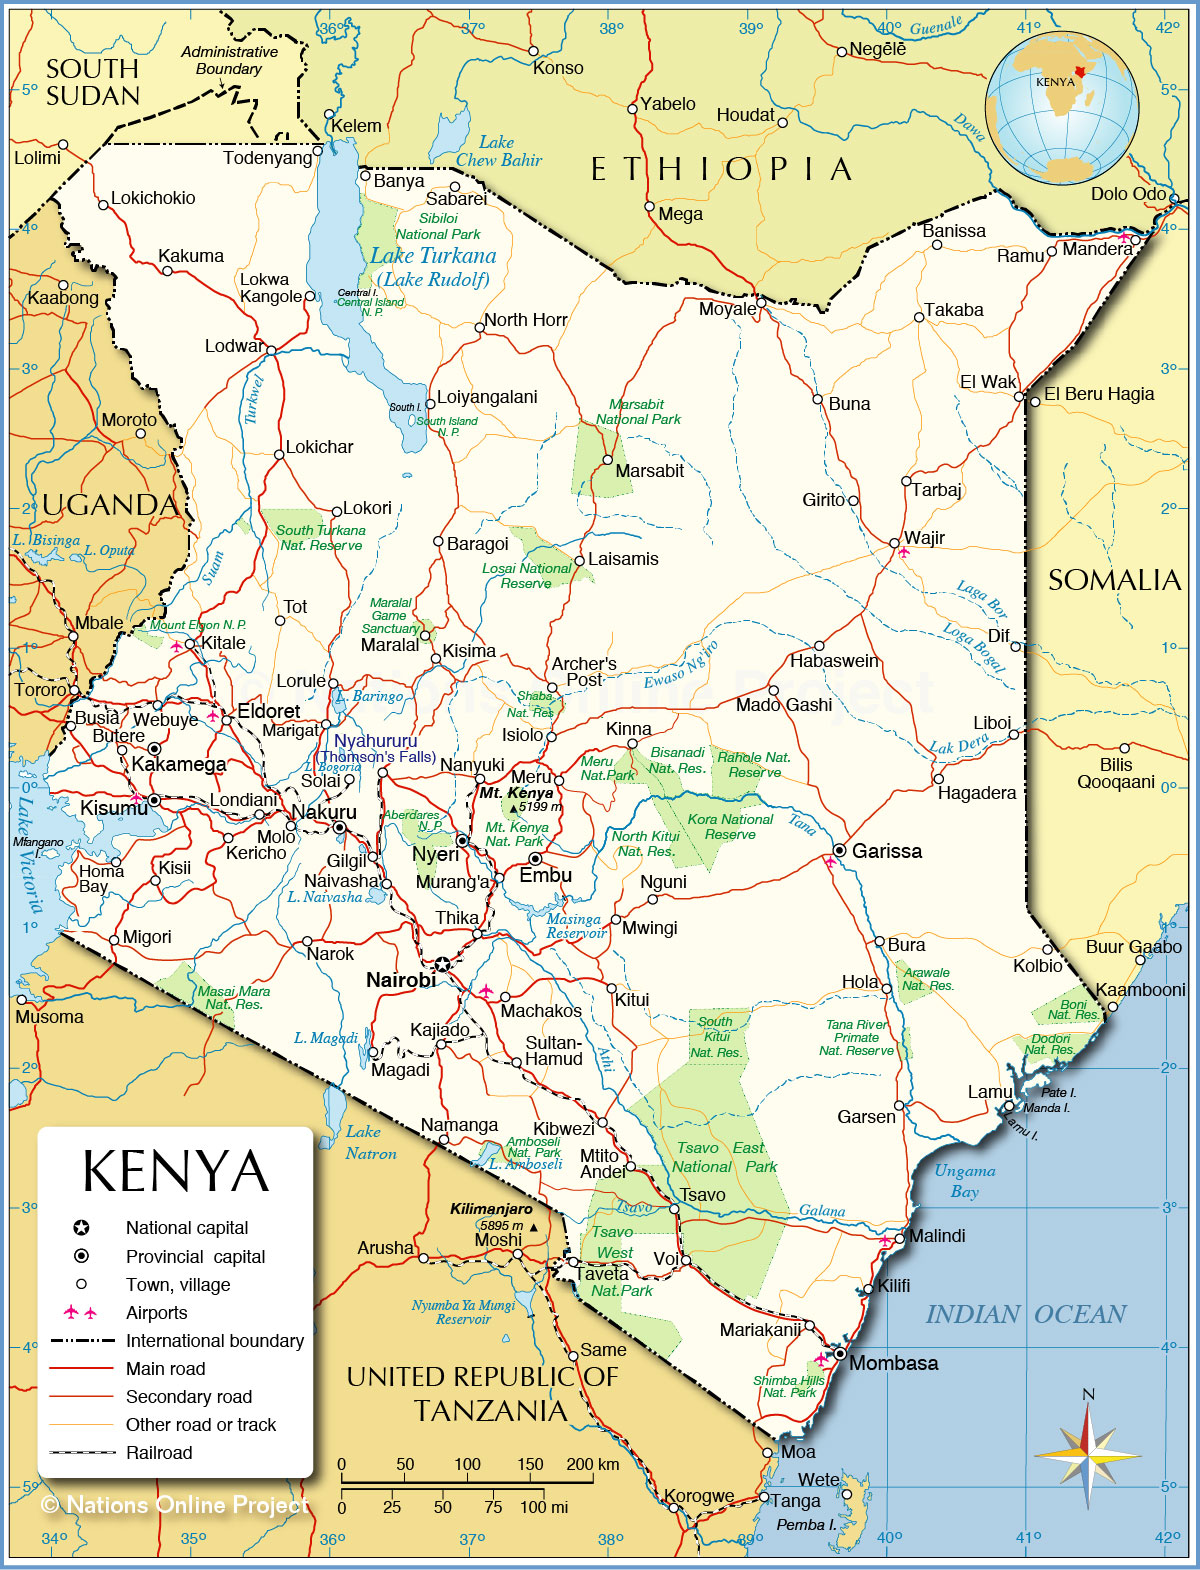 Political map of kenya nations online project political map of kenya gumiabroncs Images